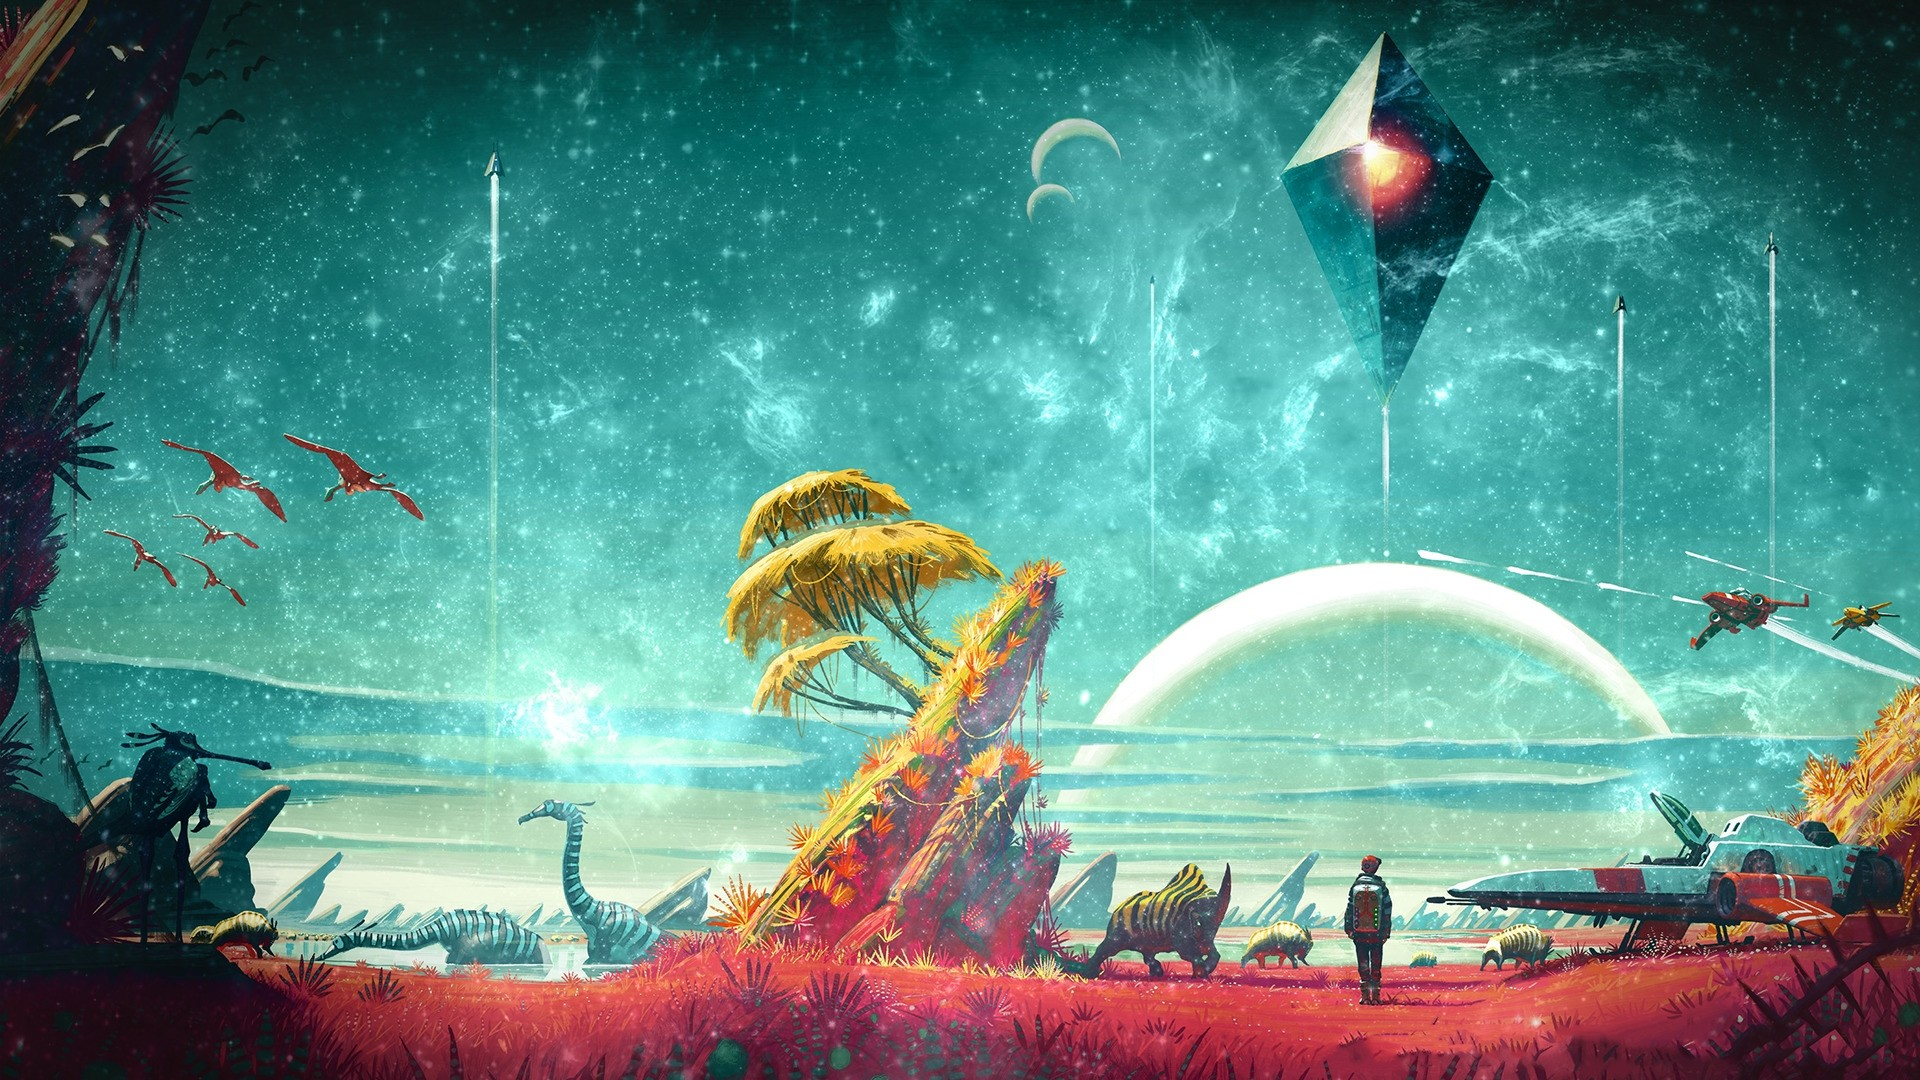 No Man's Sky HD Wallpaper